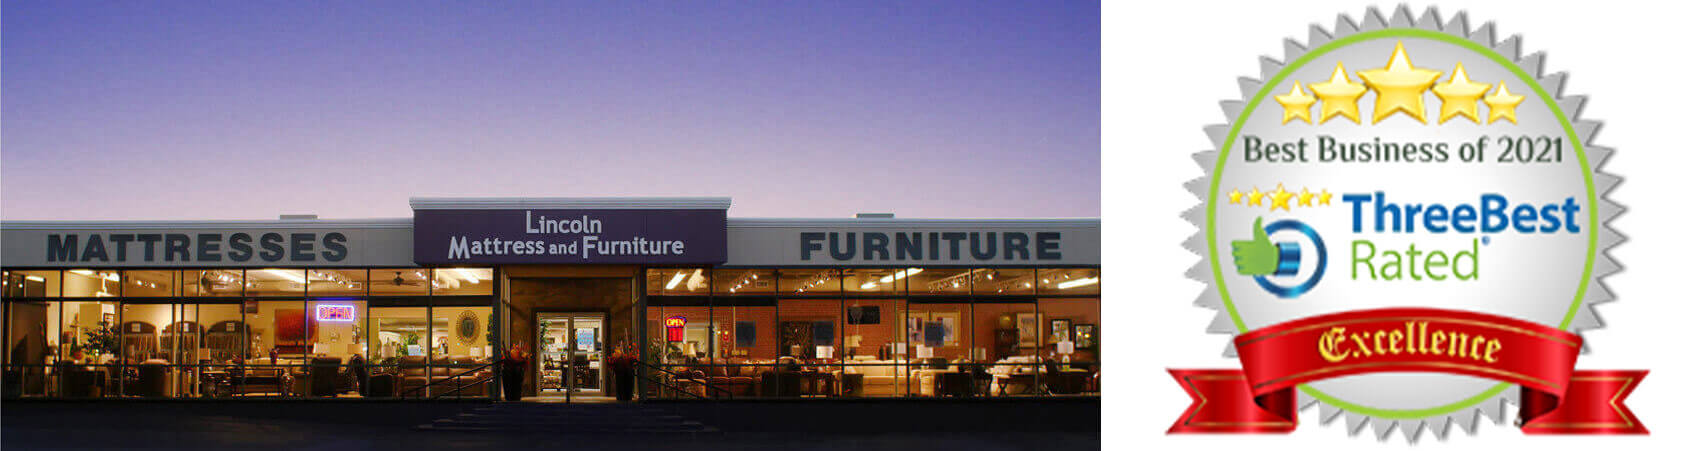 Search Site Lincoln Mattress And Furniture Logo